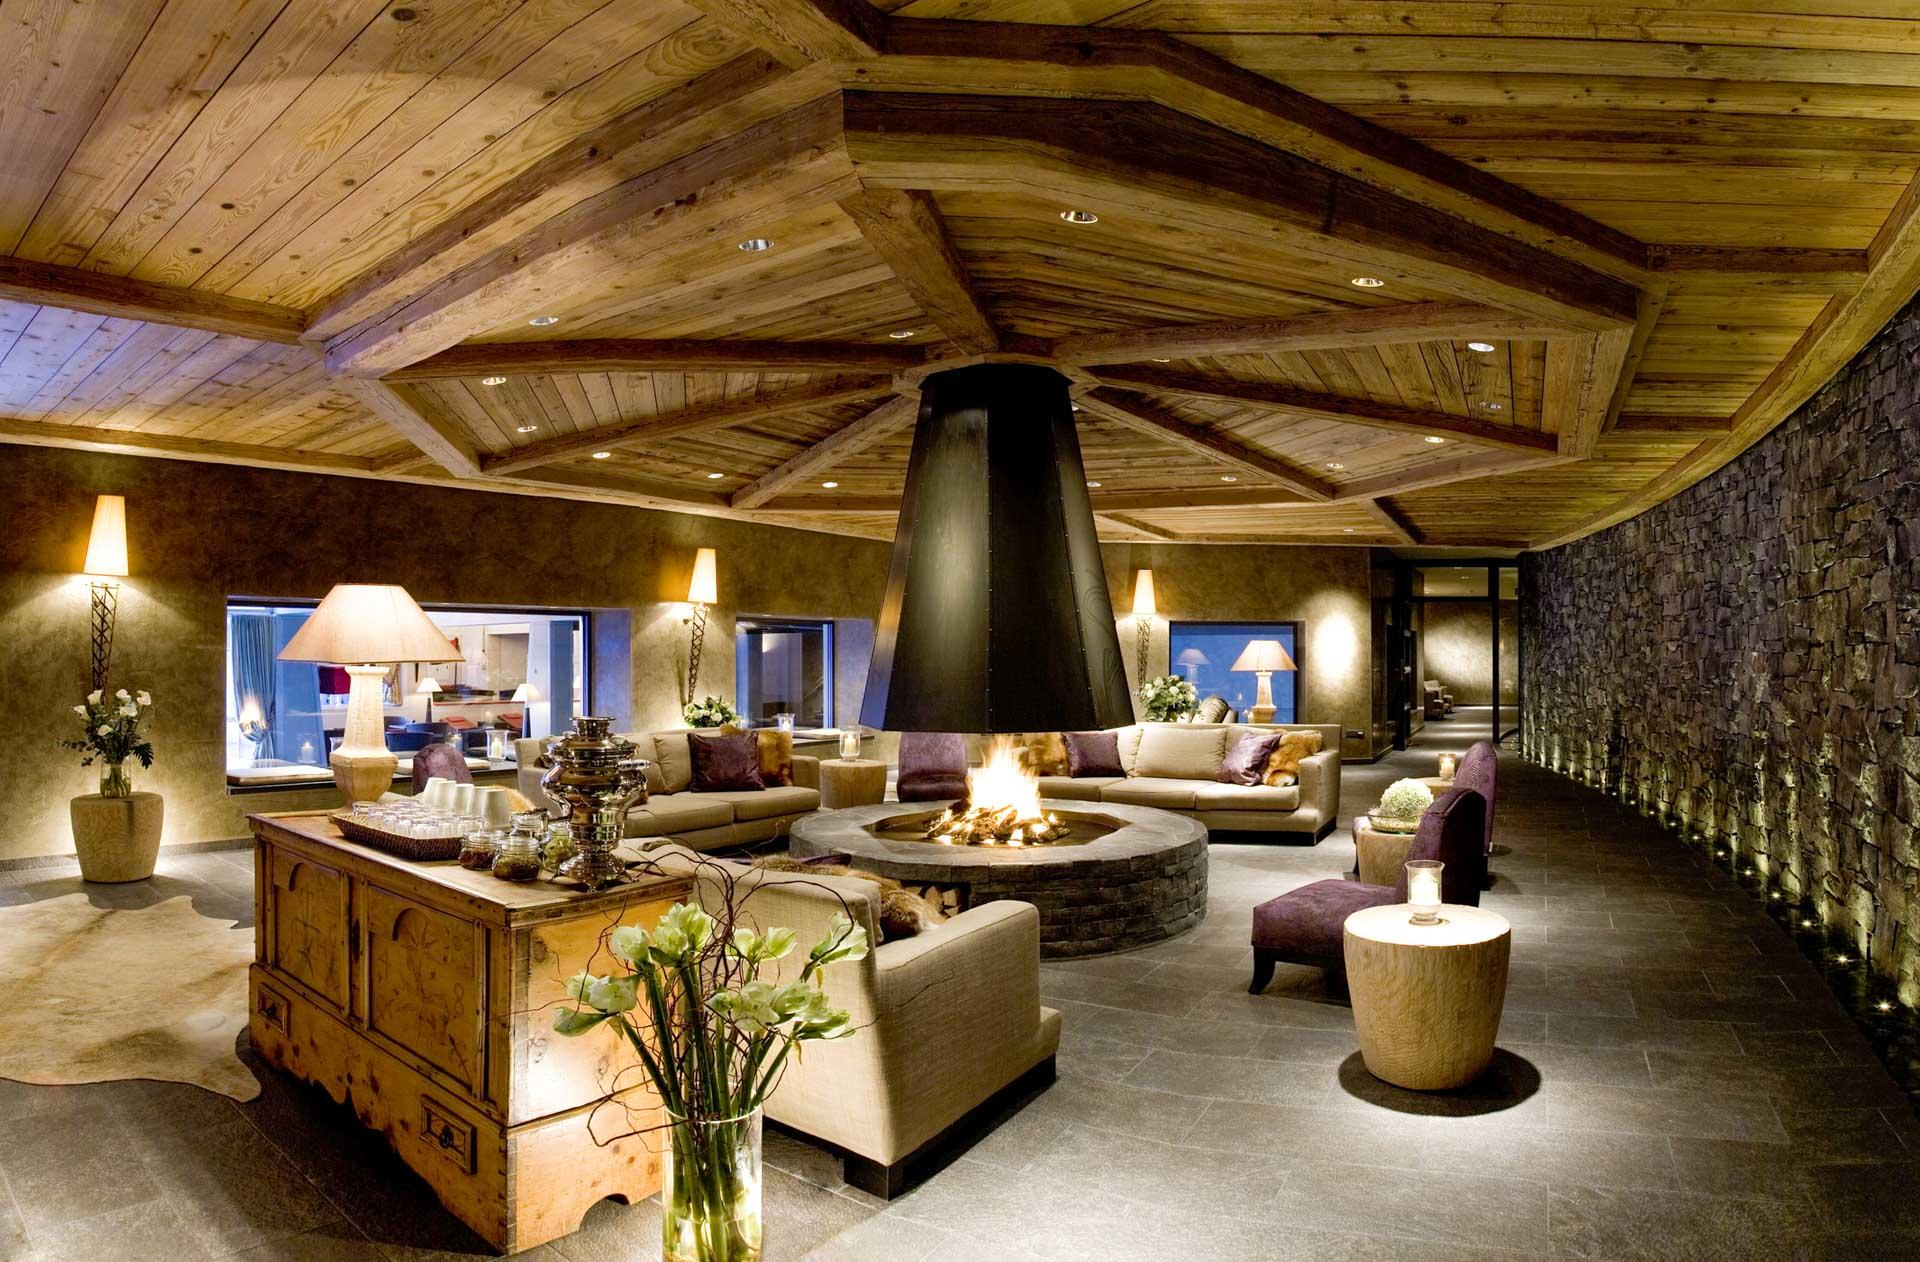 © Destination Gstaad / Royal Hotel, Winter & Gstaad Palace AG